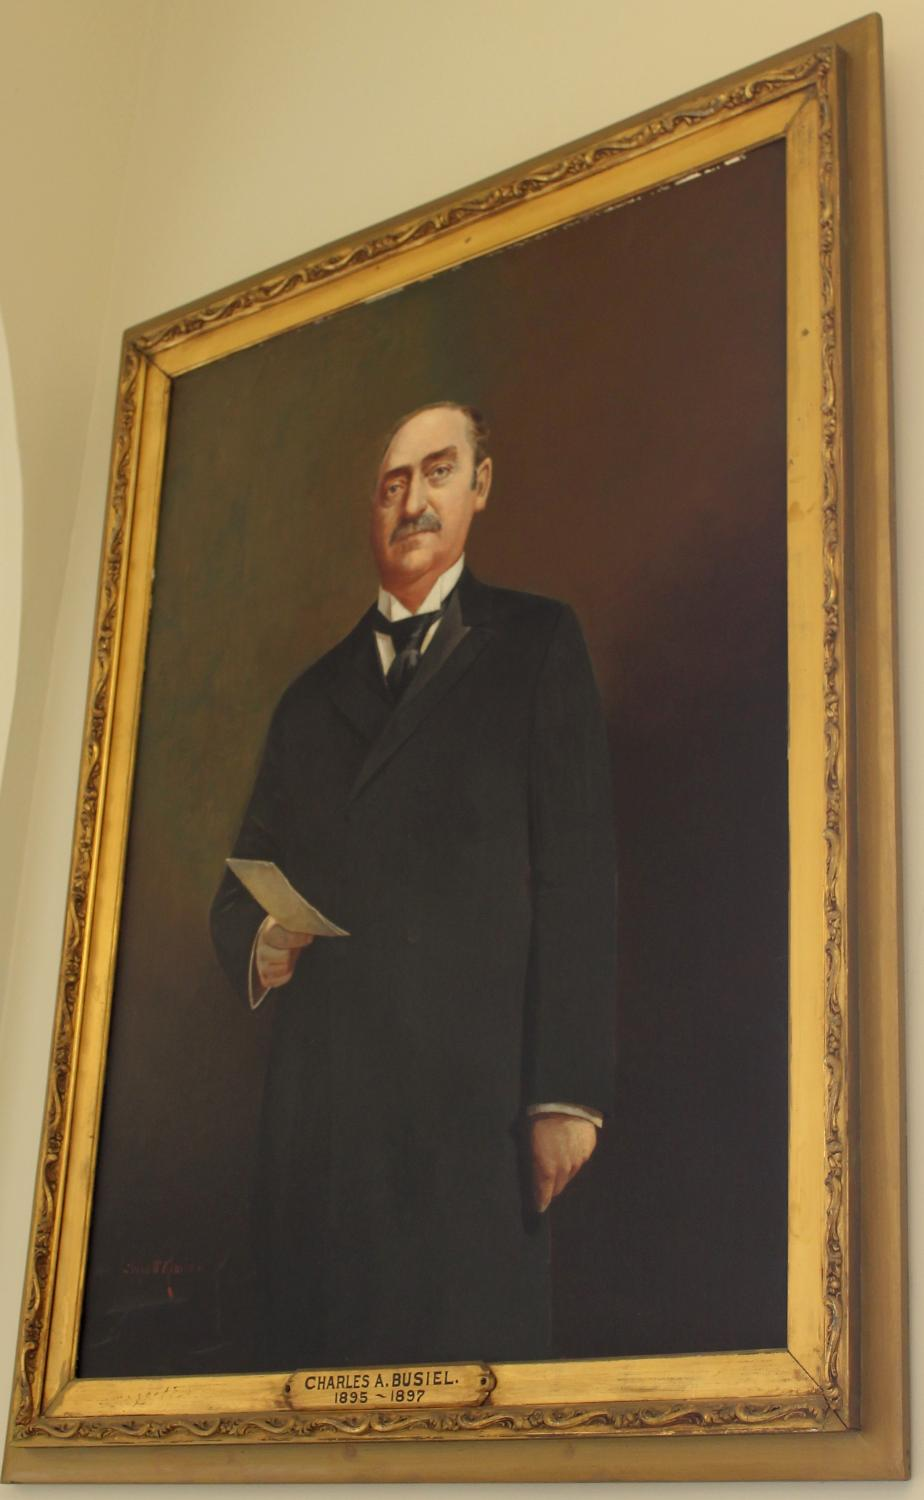 Governor Charles Busiel NH State House Portrait